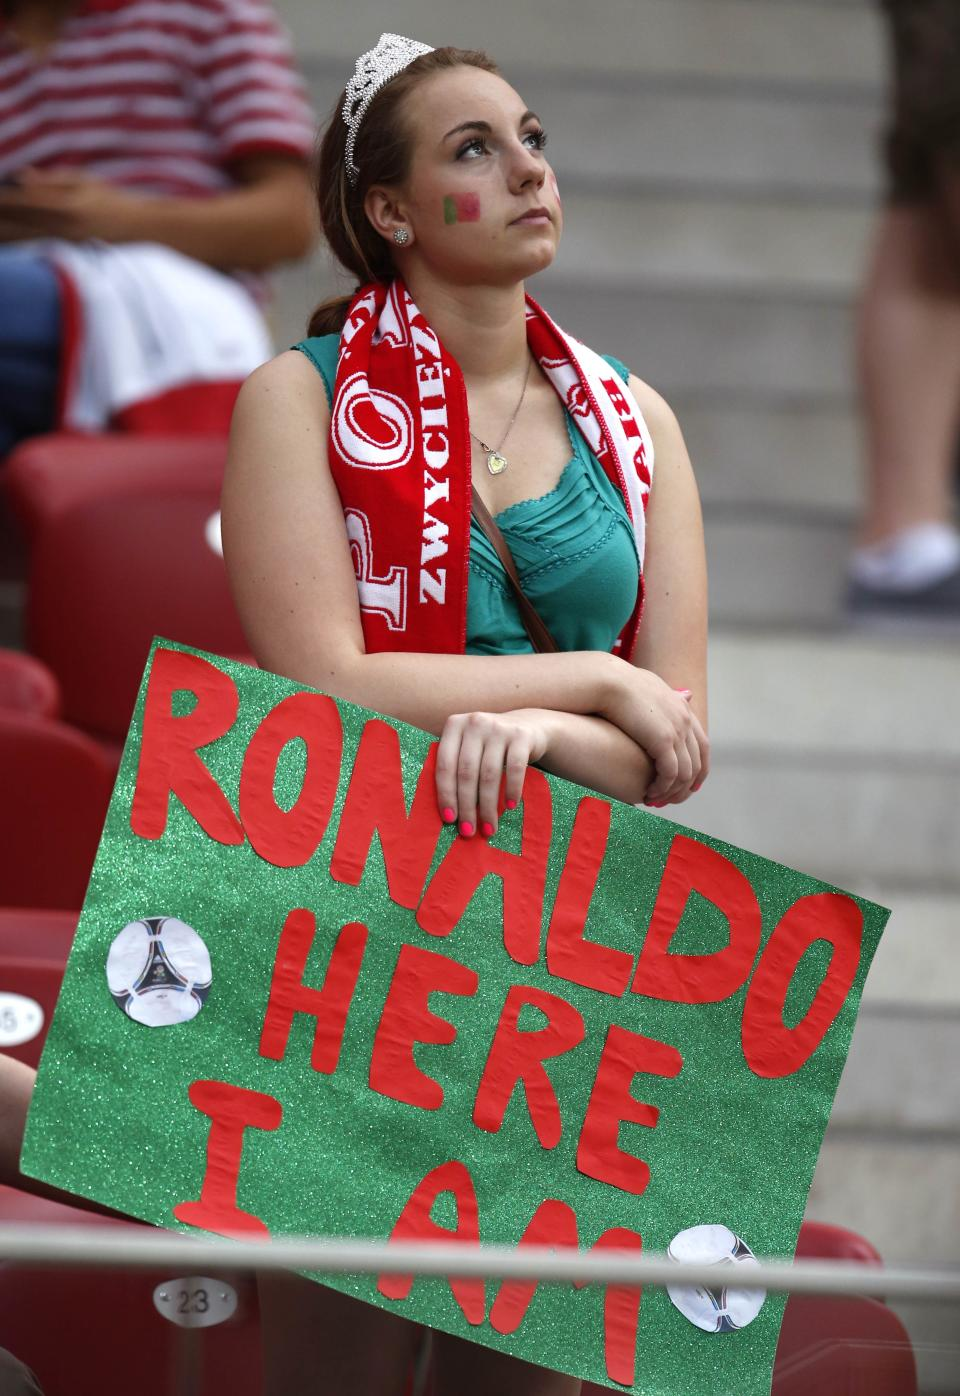 A Portugal fan waits for the start of the Euro 2012 soccer championship quarterfinal match between Czech Republic and Portugal in Warsaw, Poland, Thursday, June 21, 2012. (AP Photo/Armando Franca)